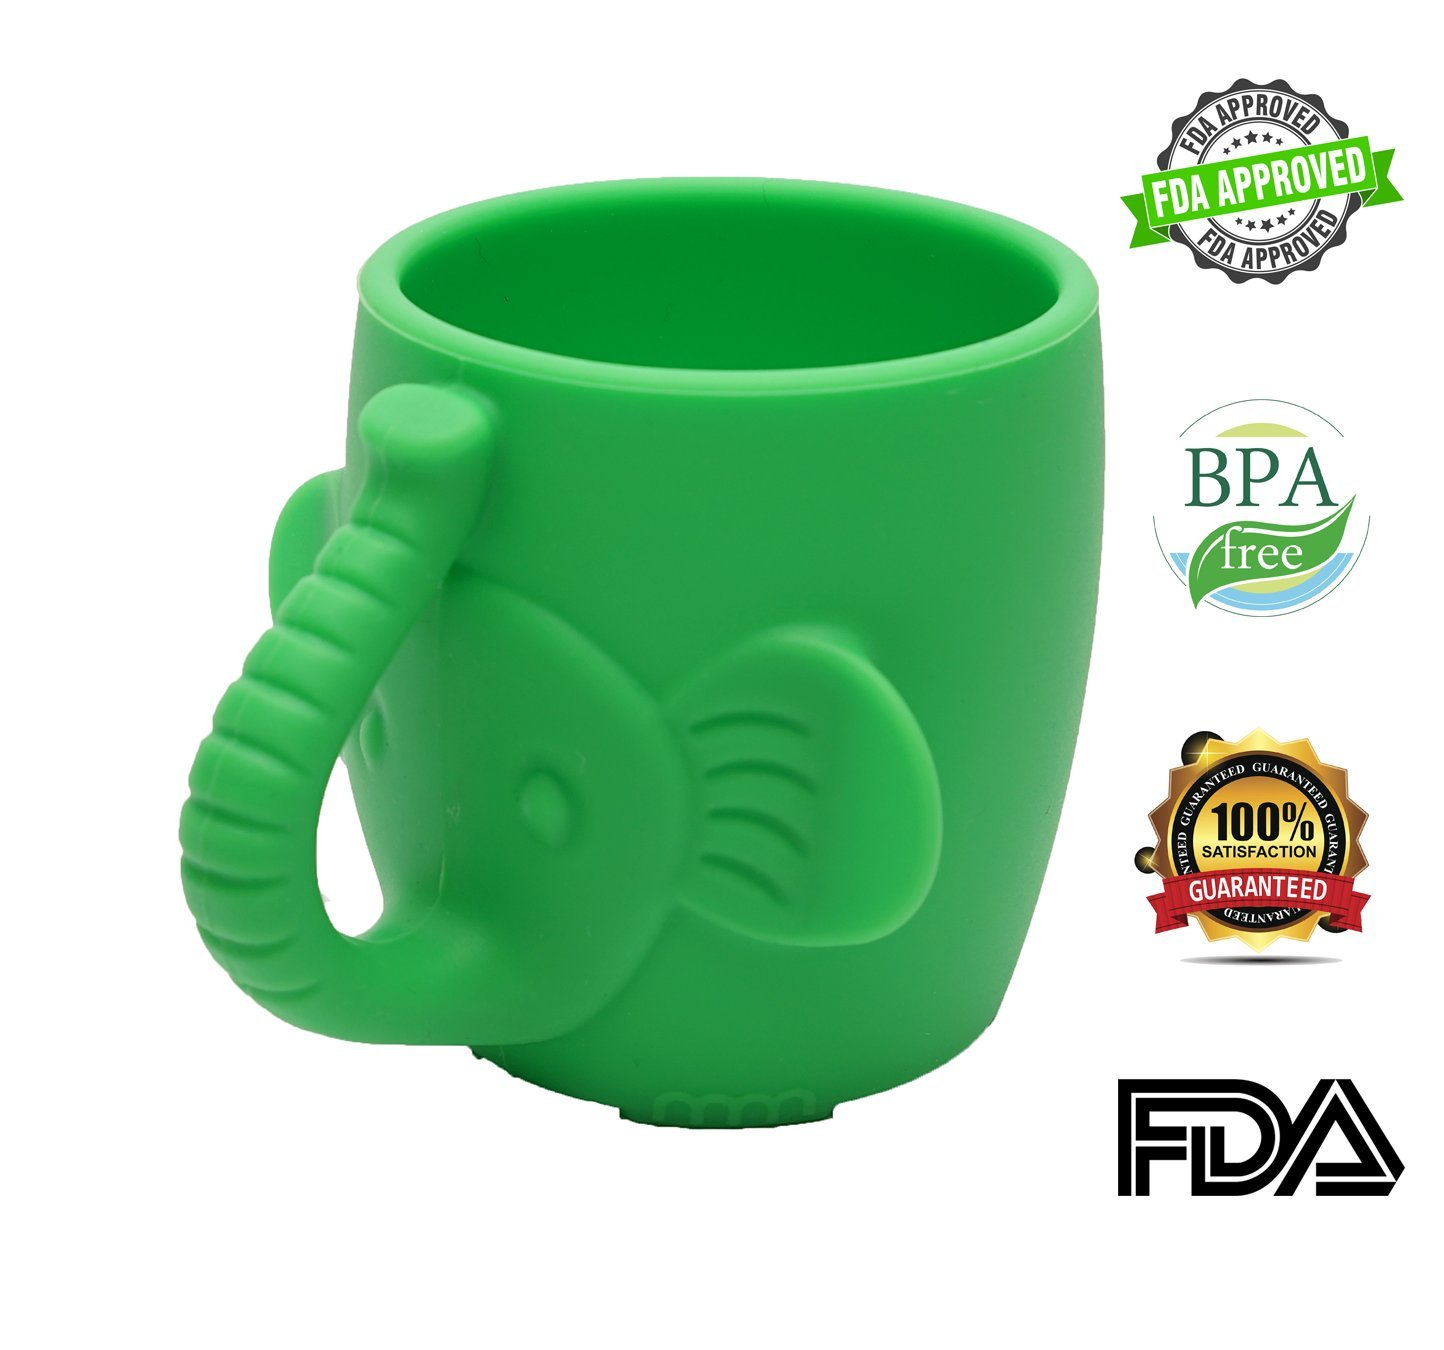 Baby Kid Sippy Cup Mug For Toddlers Learning Cup Elephant Design Great For Baby's Interaction Dexterity Food Grade Silicone BPA FREE Bambini Bear - Lime Green